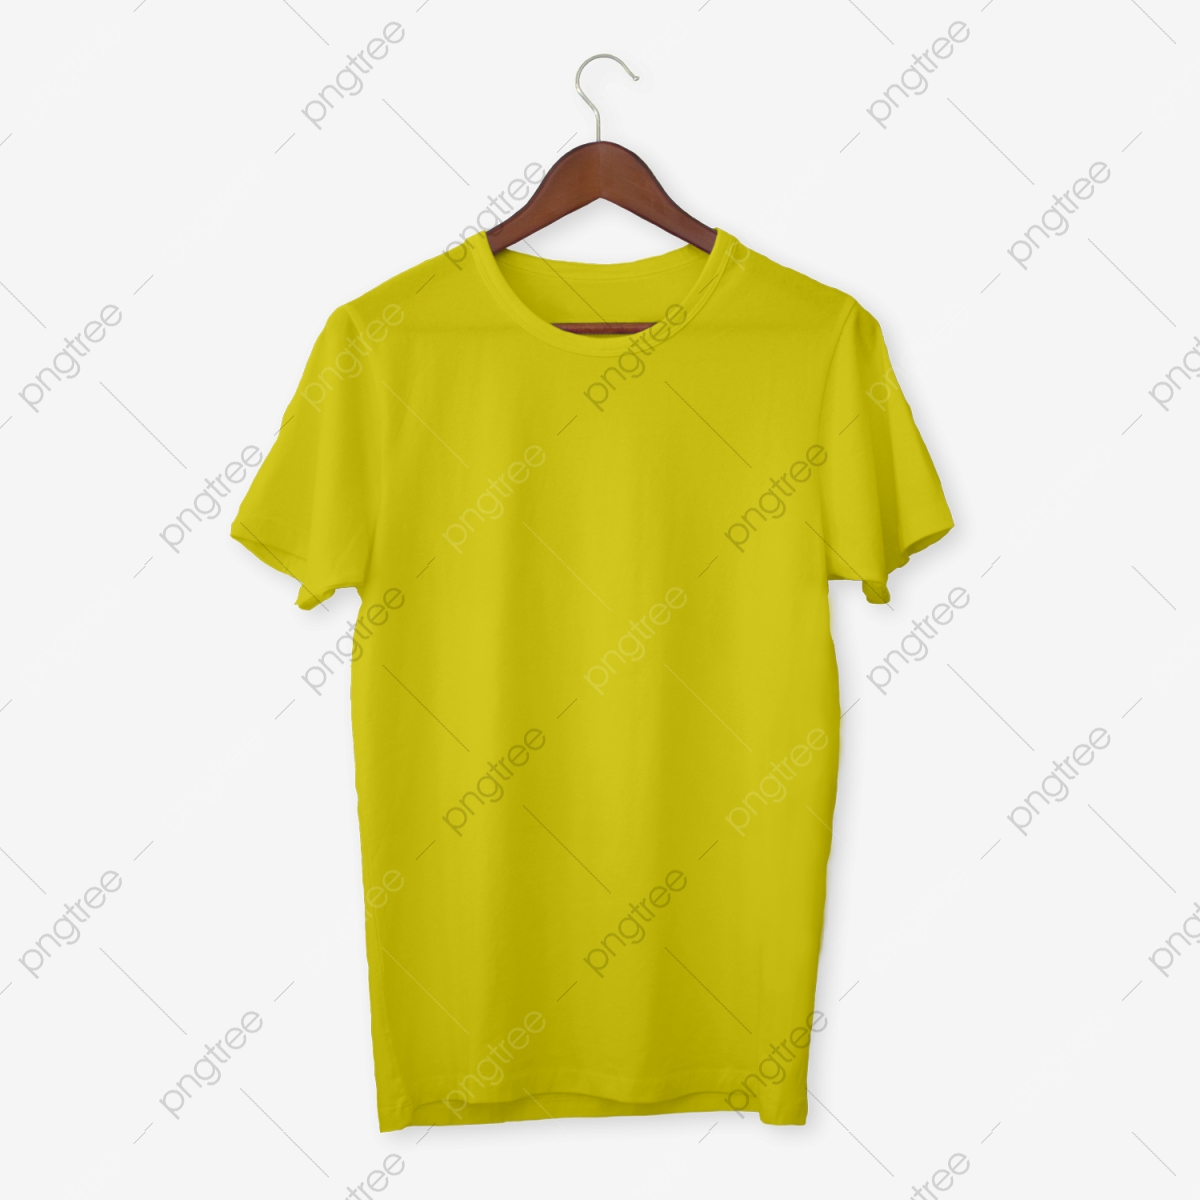 Download Yellow T Shirt Mockup T Shirts Mens White Png Transparent Clipart Image And Psd File For Free Download Yellowimages Mockups